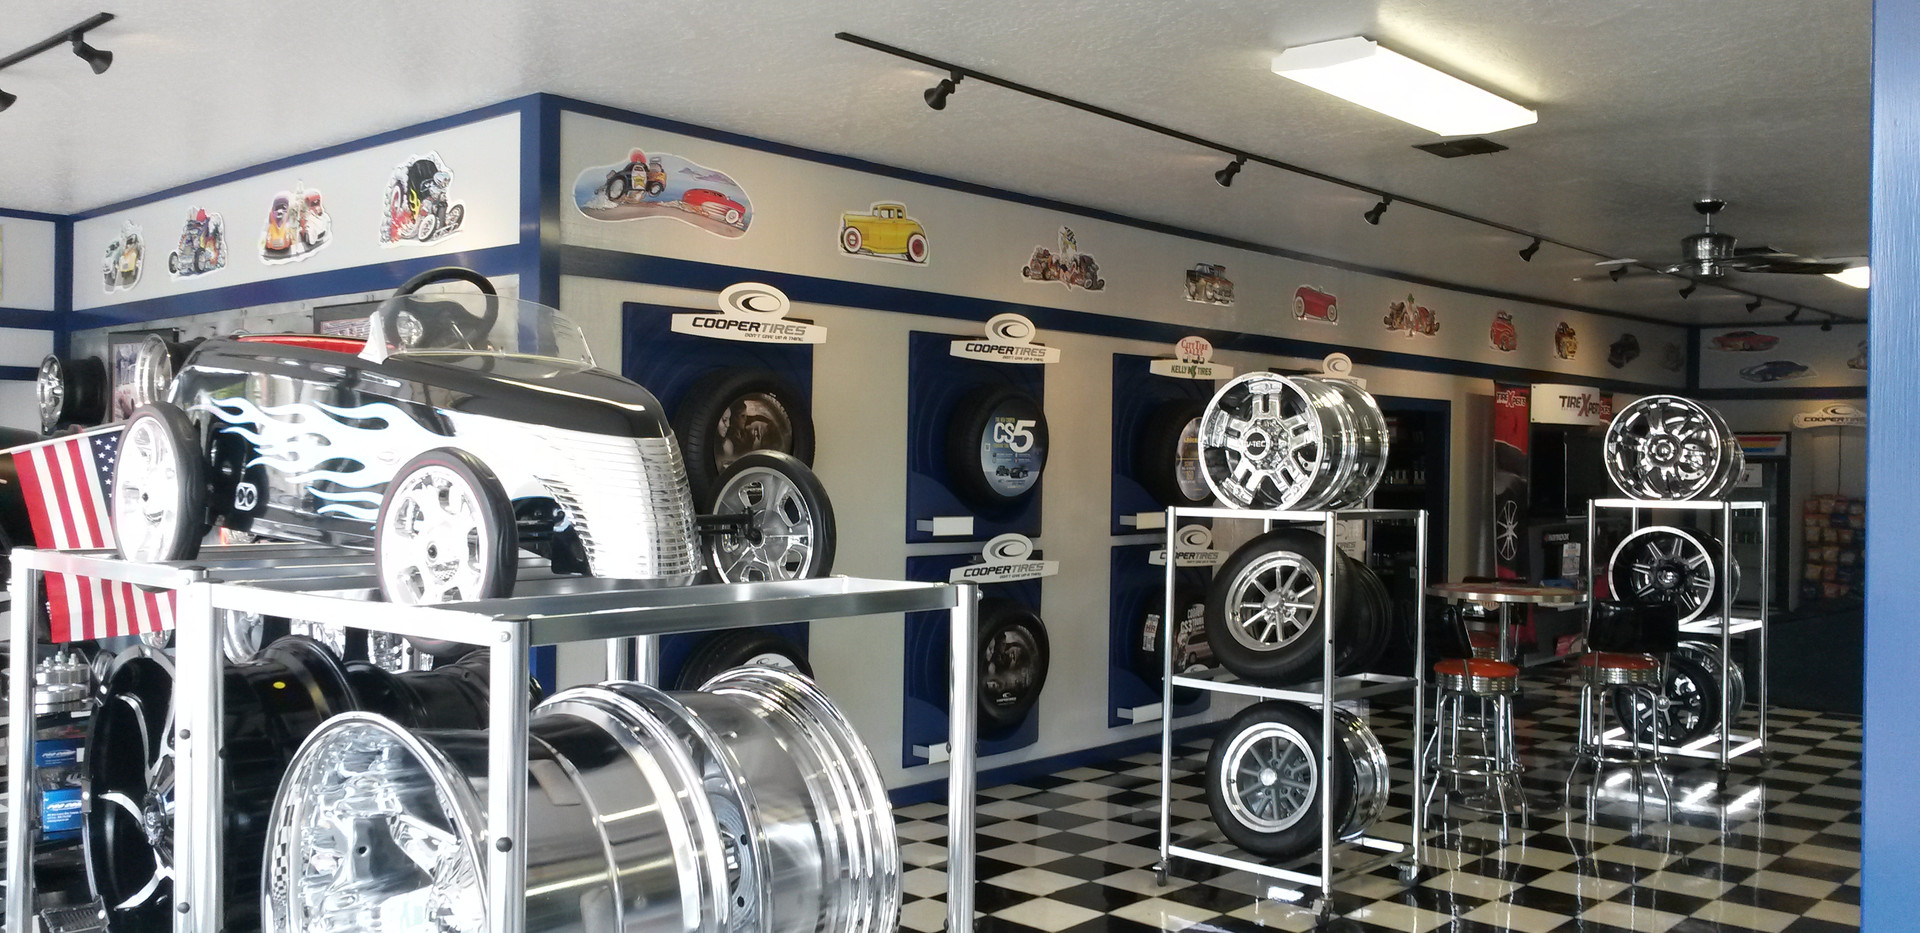 Inside of the shop